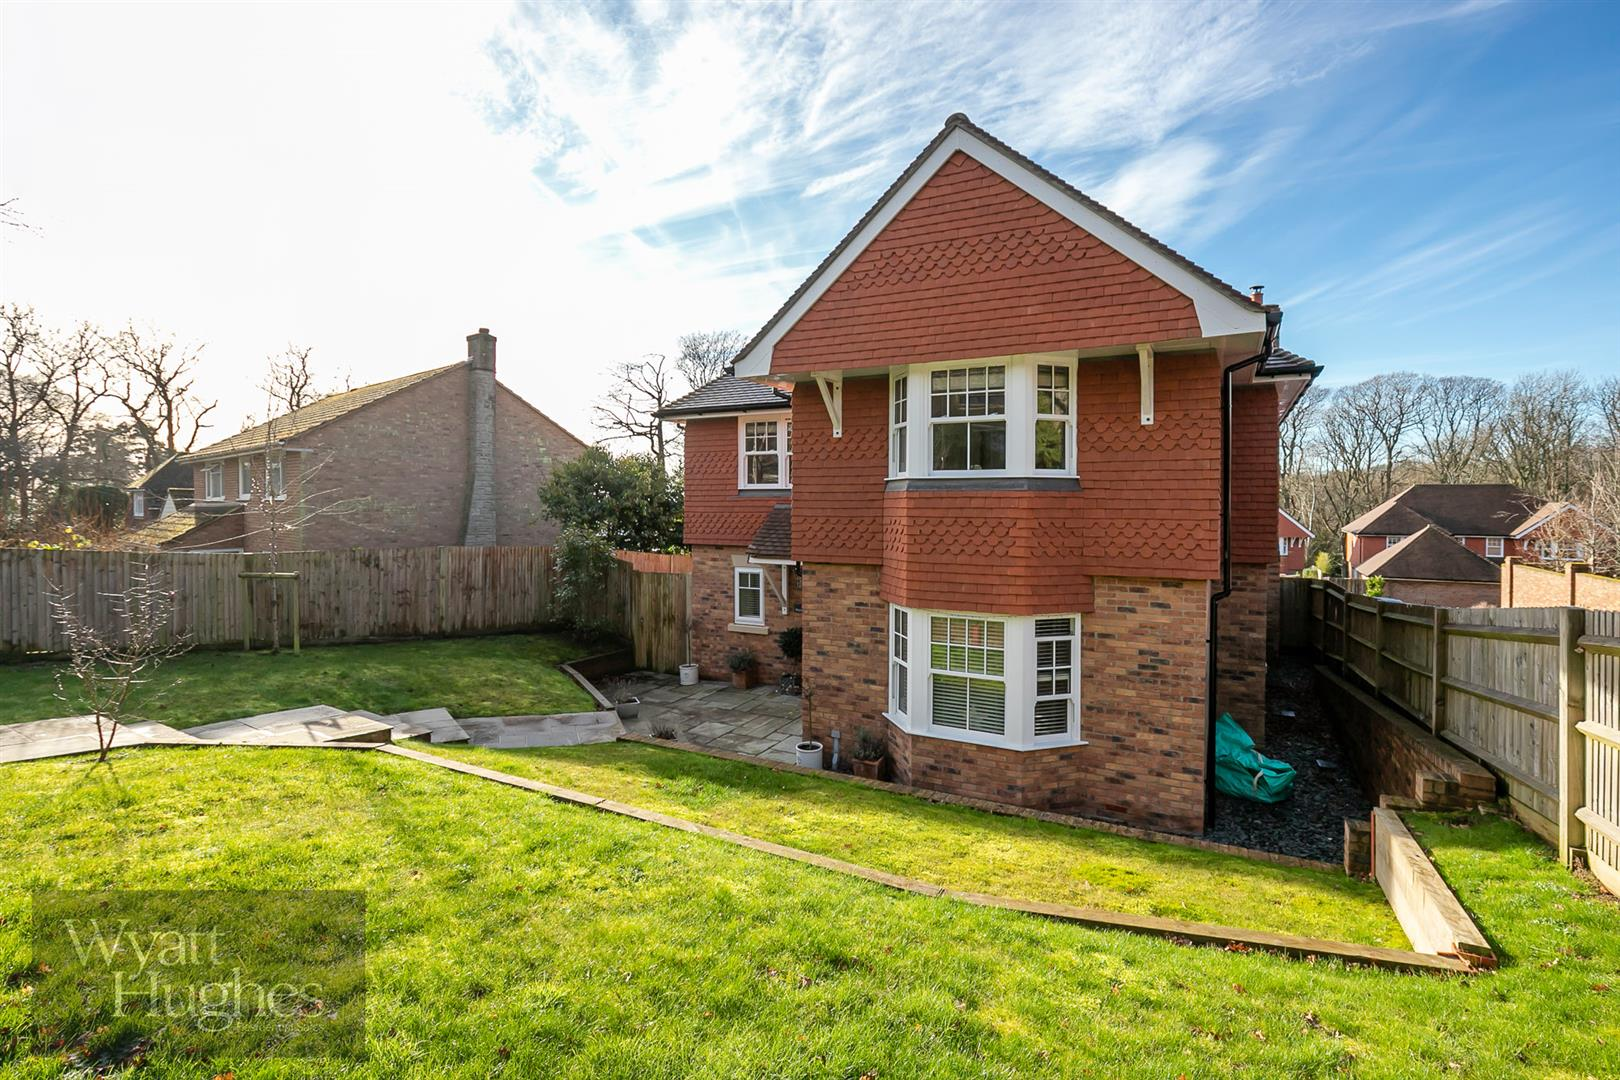 5 bed detached house for sale in Westwoods, Hastings, TN34